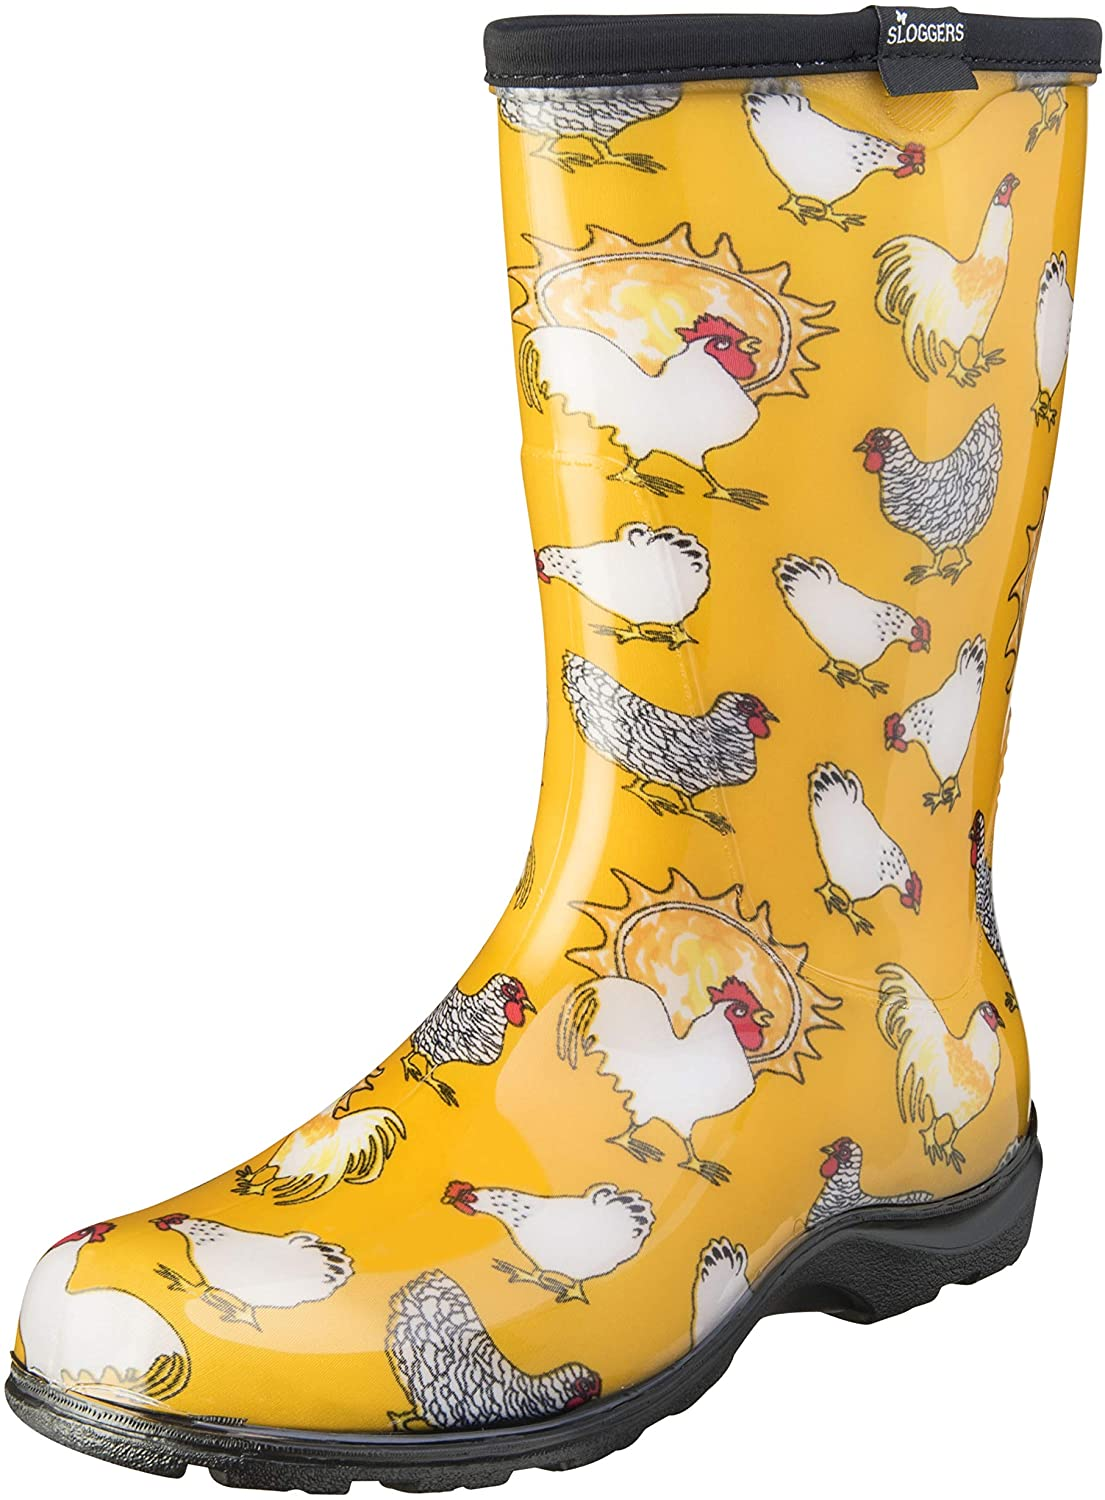 B012SPOOMY Sloggers Women's Waterproof Rain and Garden Boot with Comfort Insole, Chickens Daffodil Yellow, Size 7, Style 5016CDY07 81jnfXXCuNL